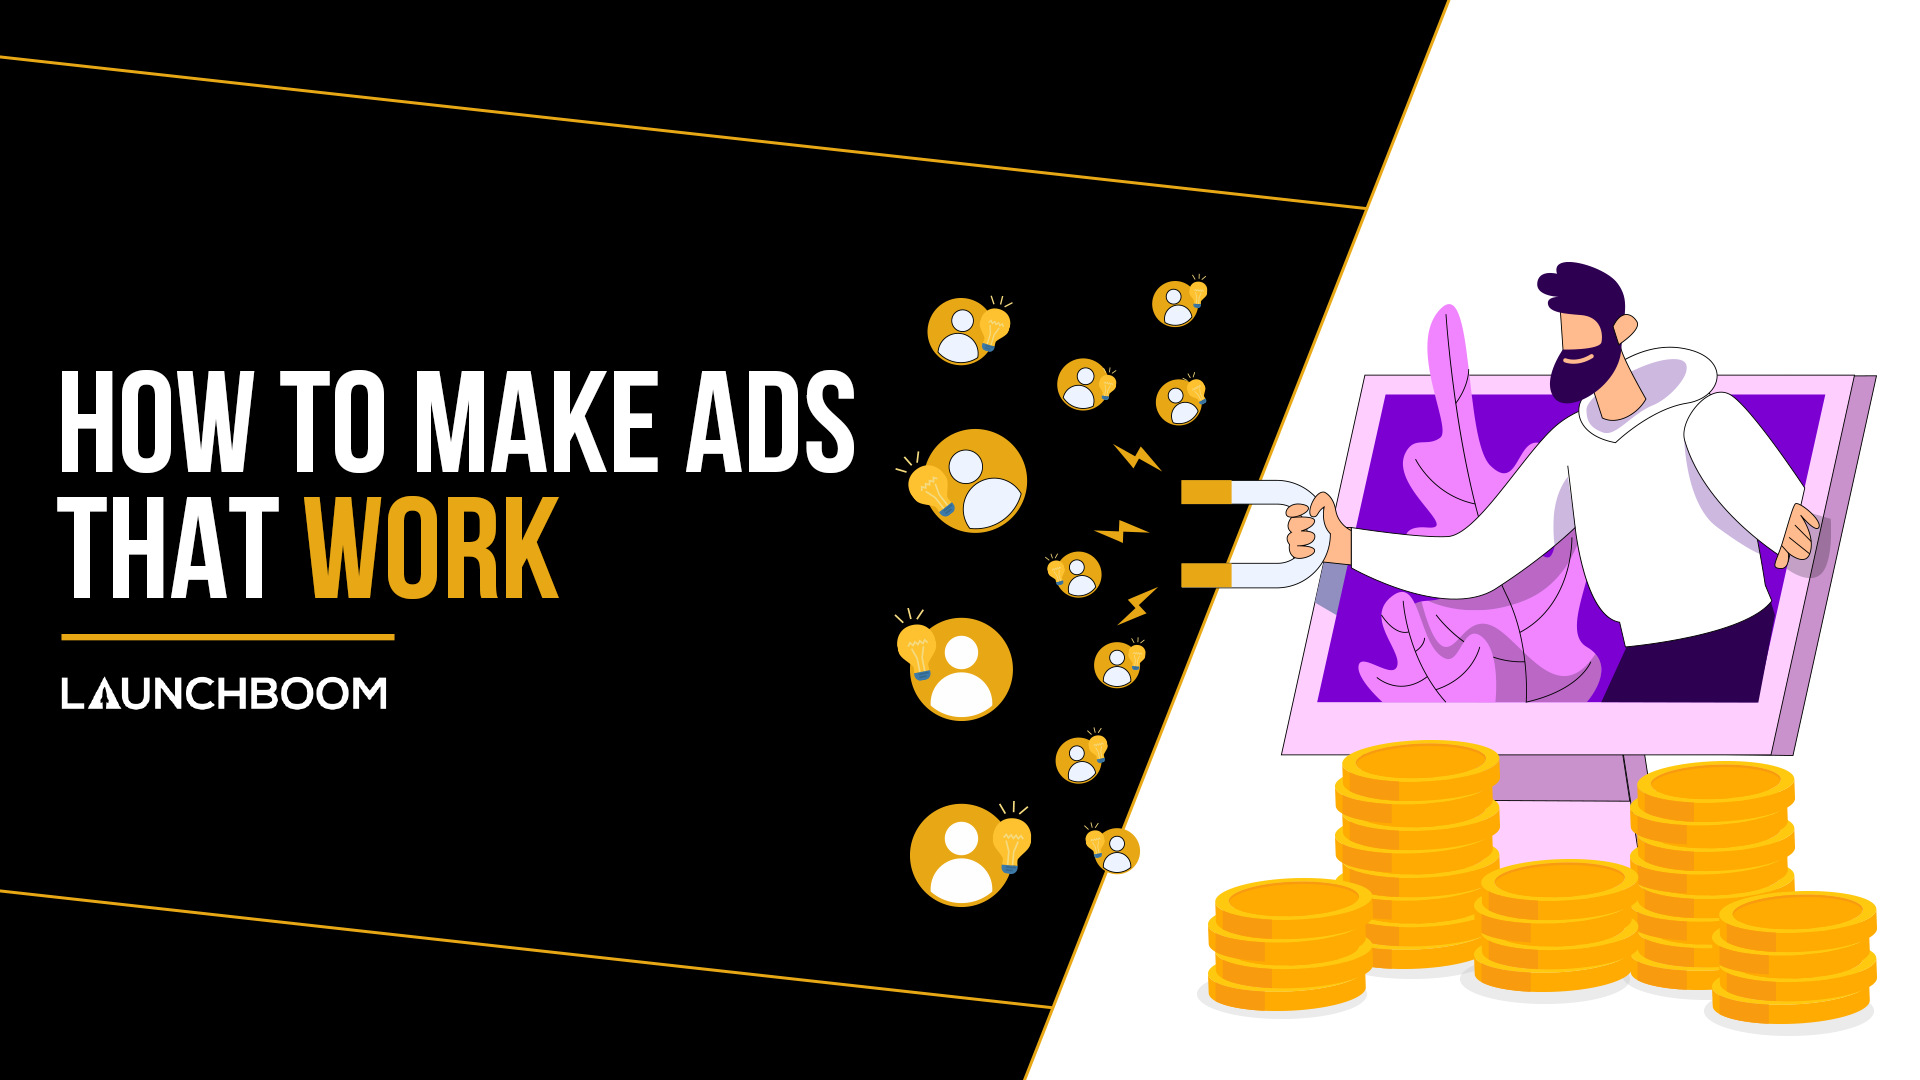 How to make ads that work